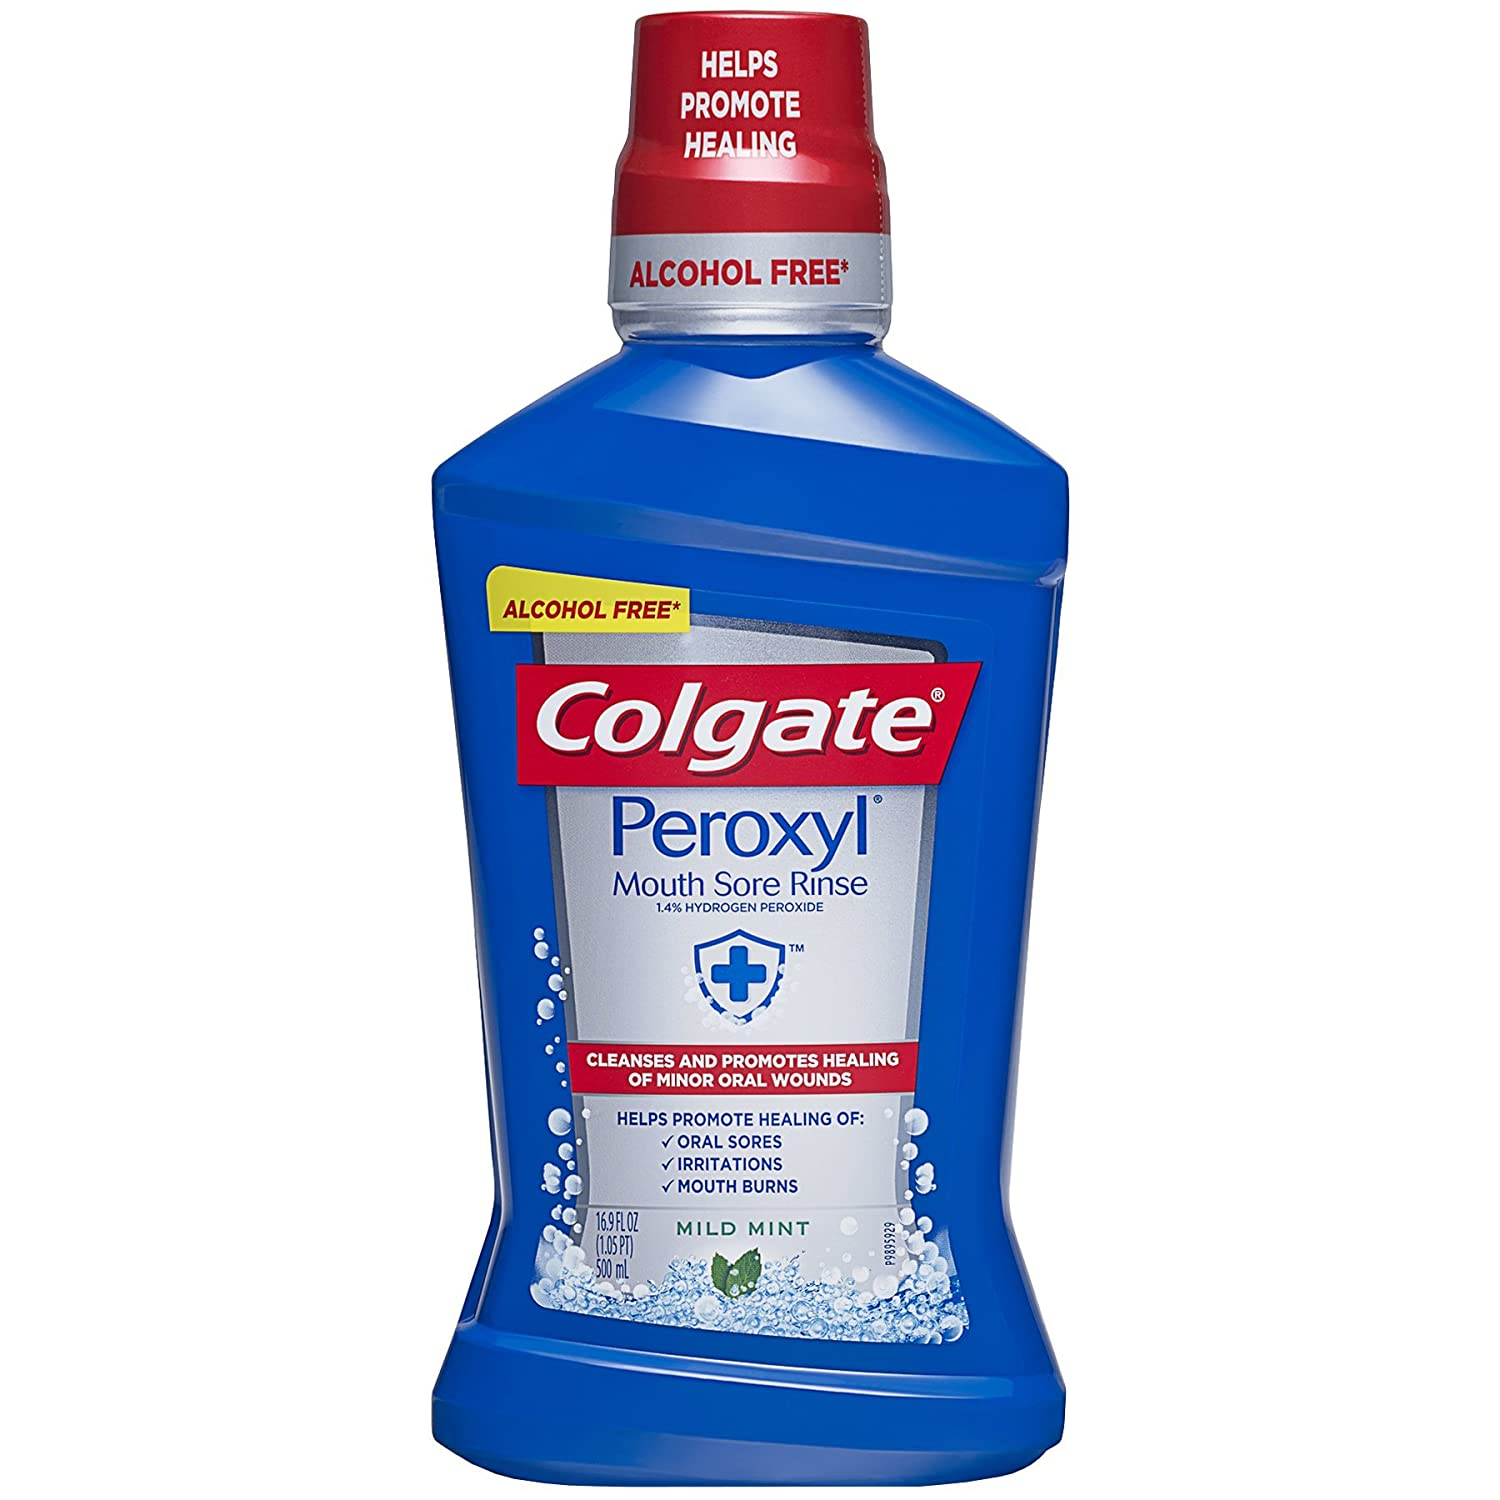 Colgate Peroxyl Mouth Sore Rinse, Mild Mint - 16.9 fluid Ounce Colgate-Palmolive Co 10035000320299